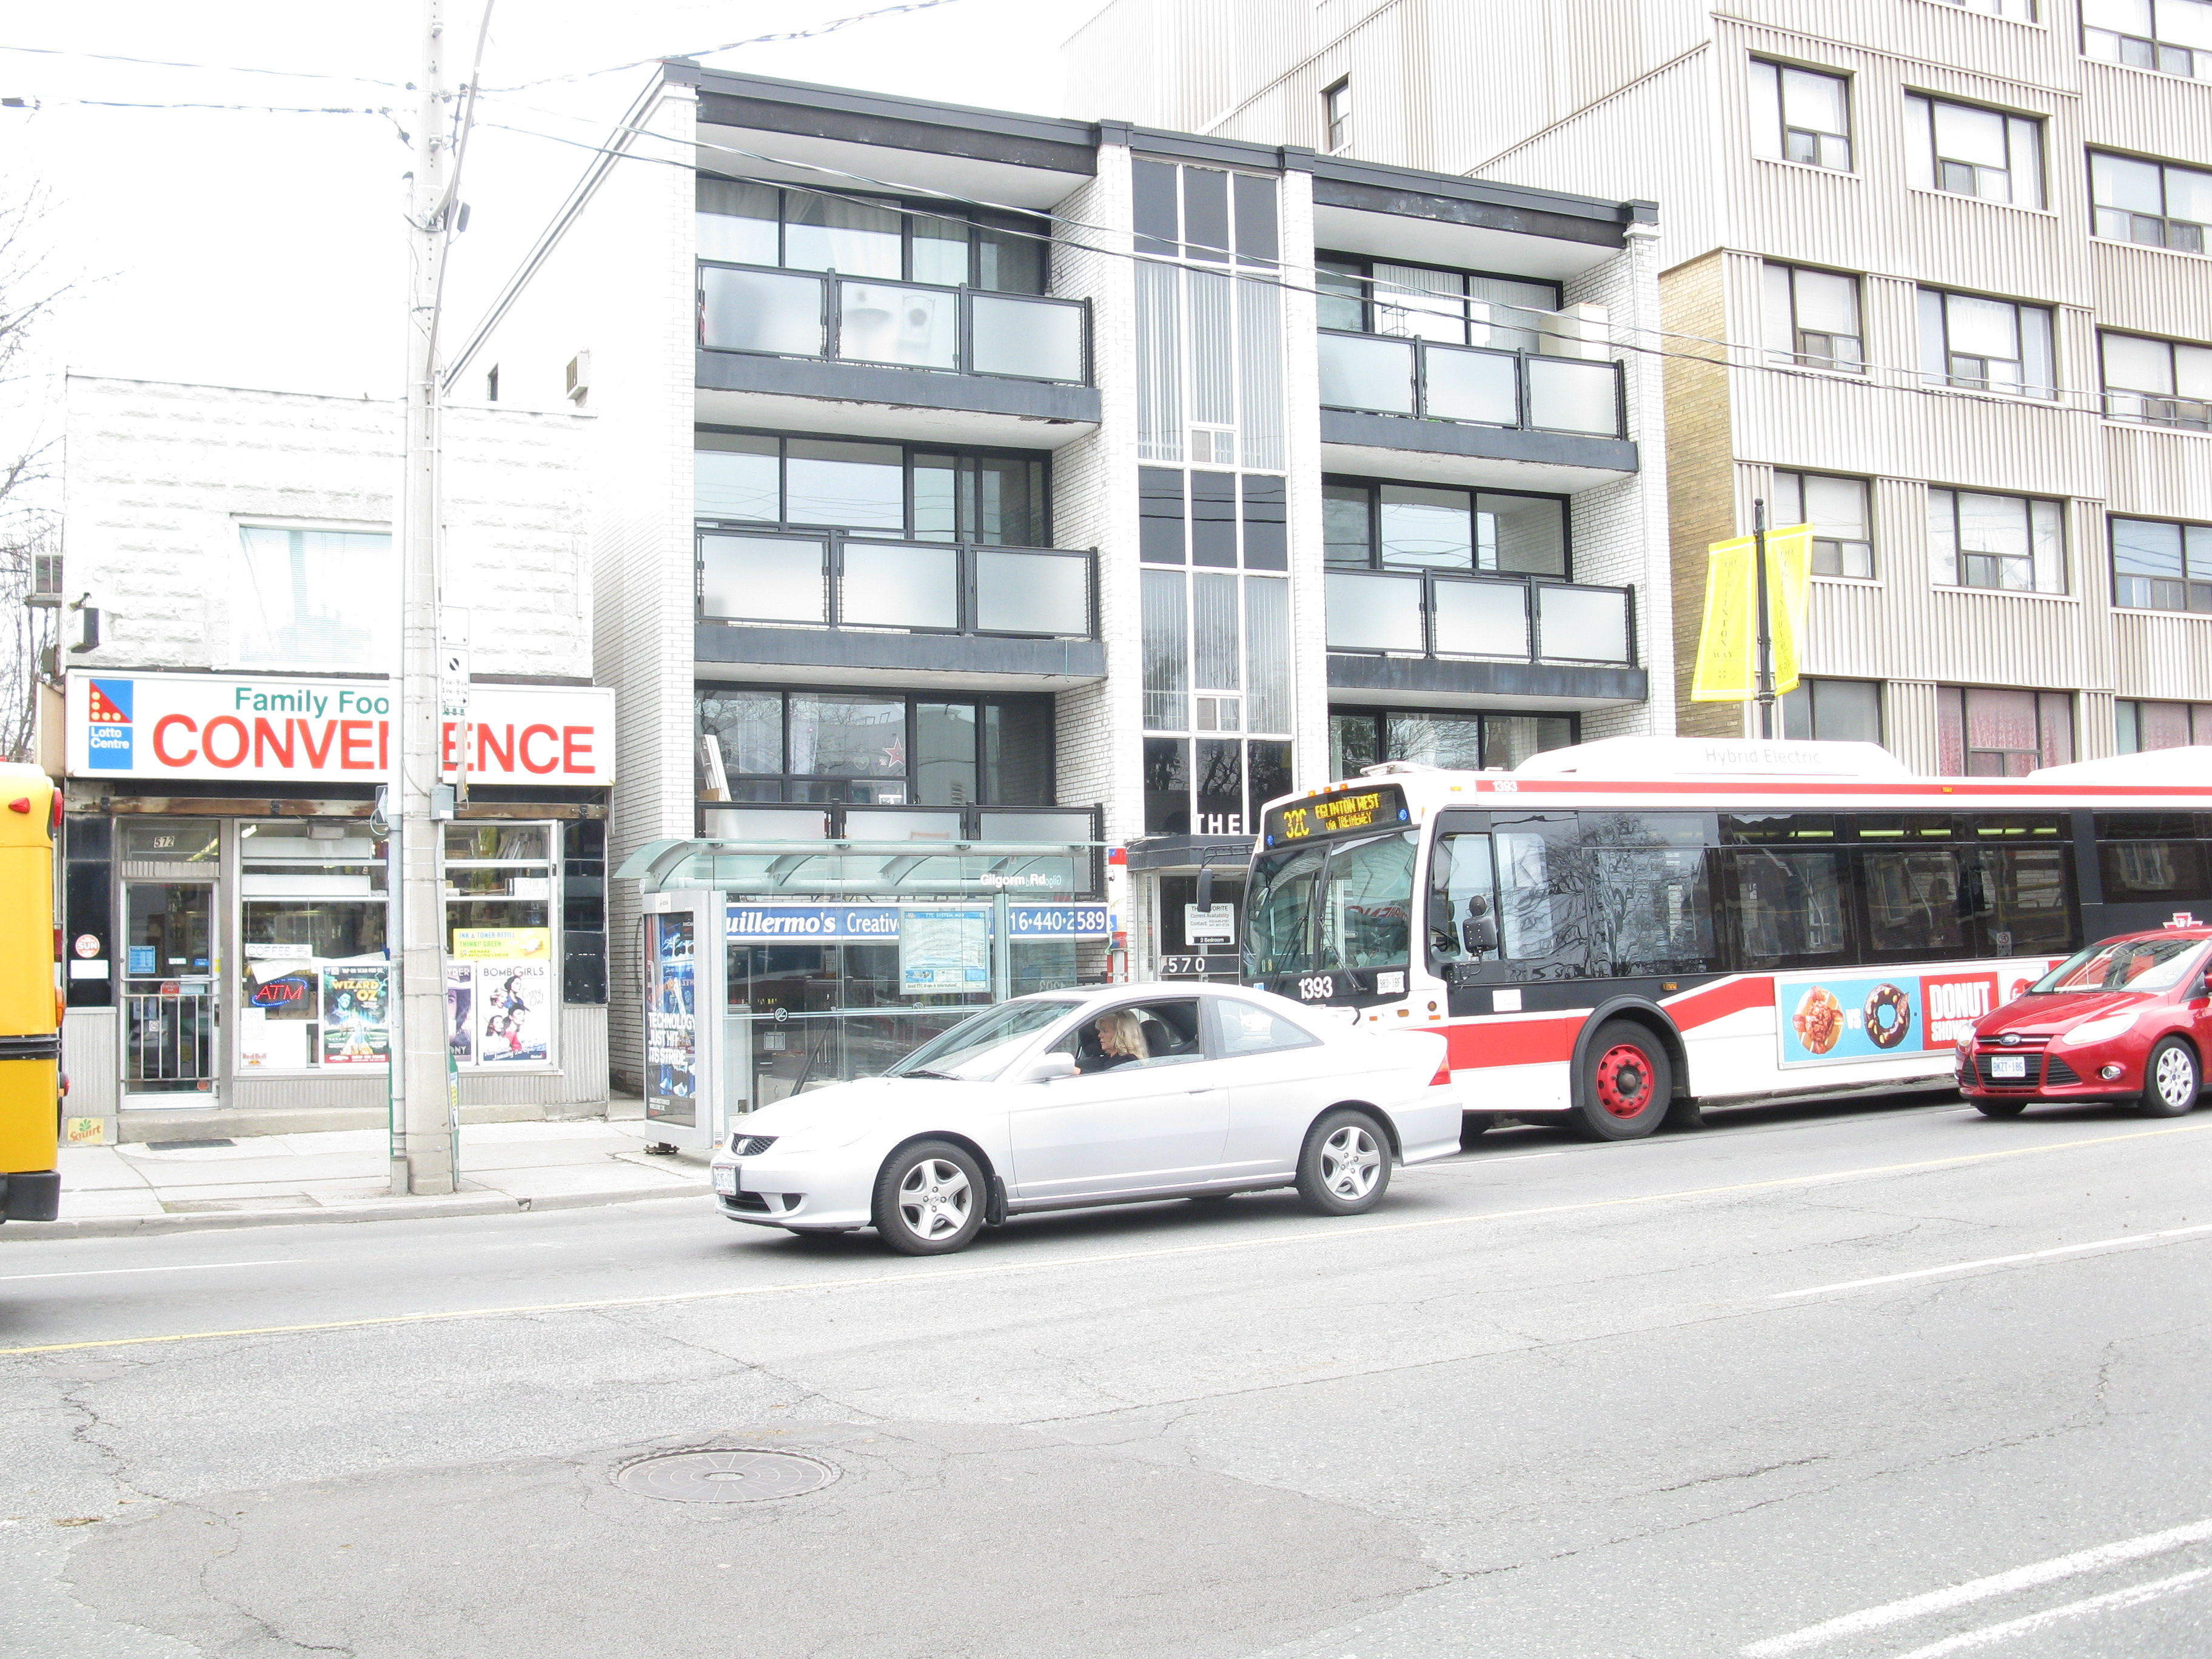 Intersection of Chaplin and Eglinton, 2013 04 09 -ar, Architecture, Building, Car, Outdoor, HQ Photo